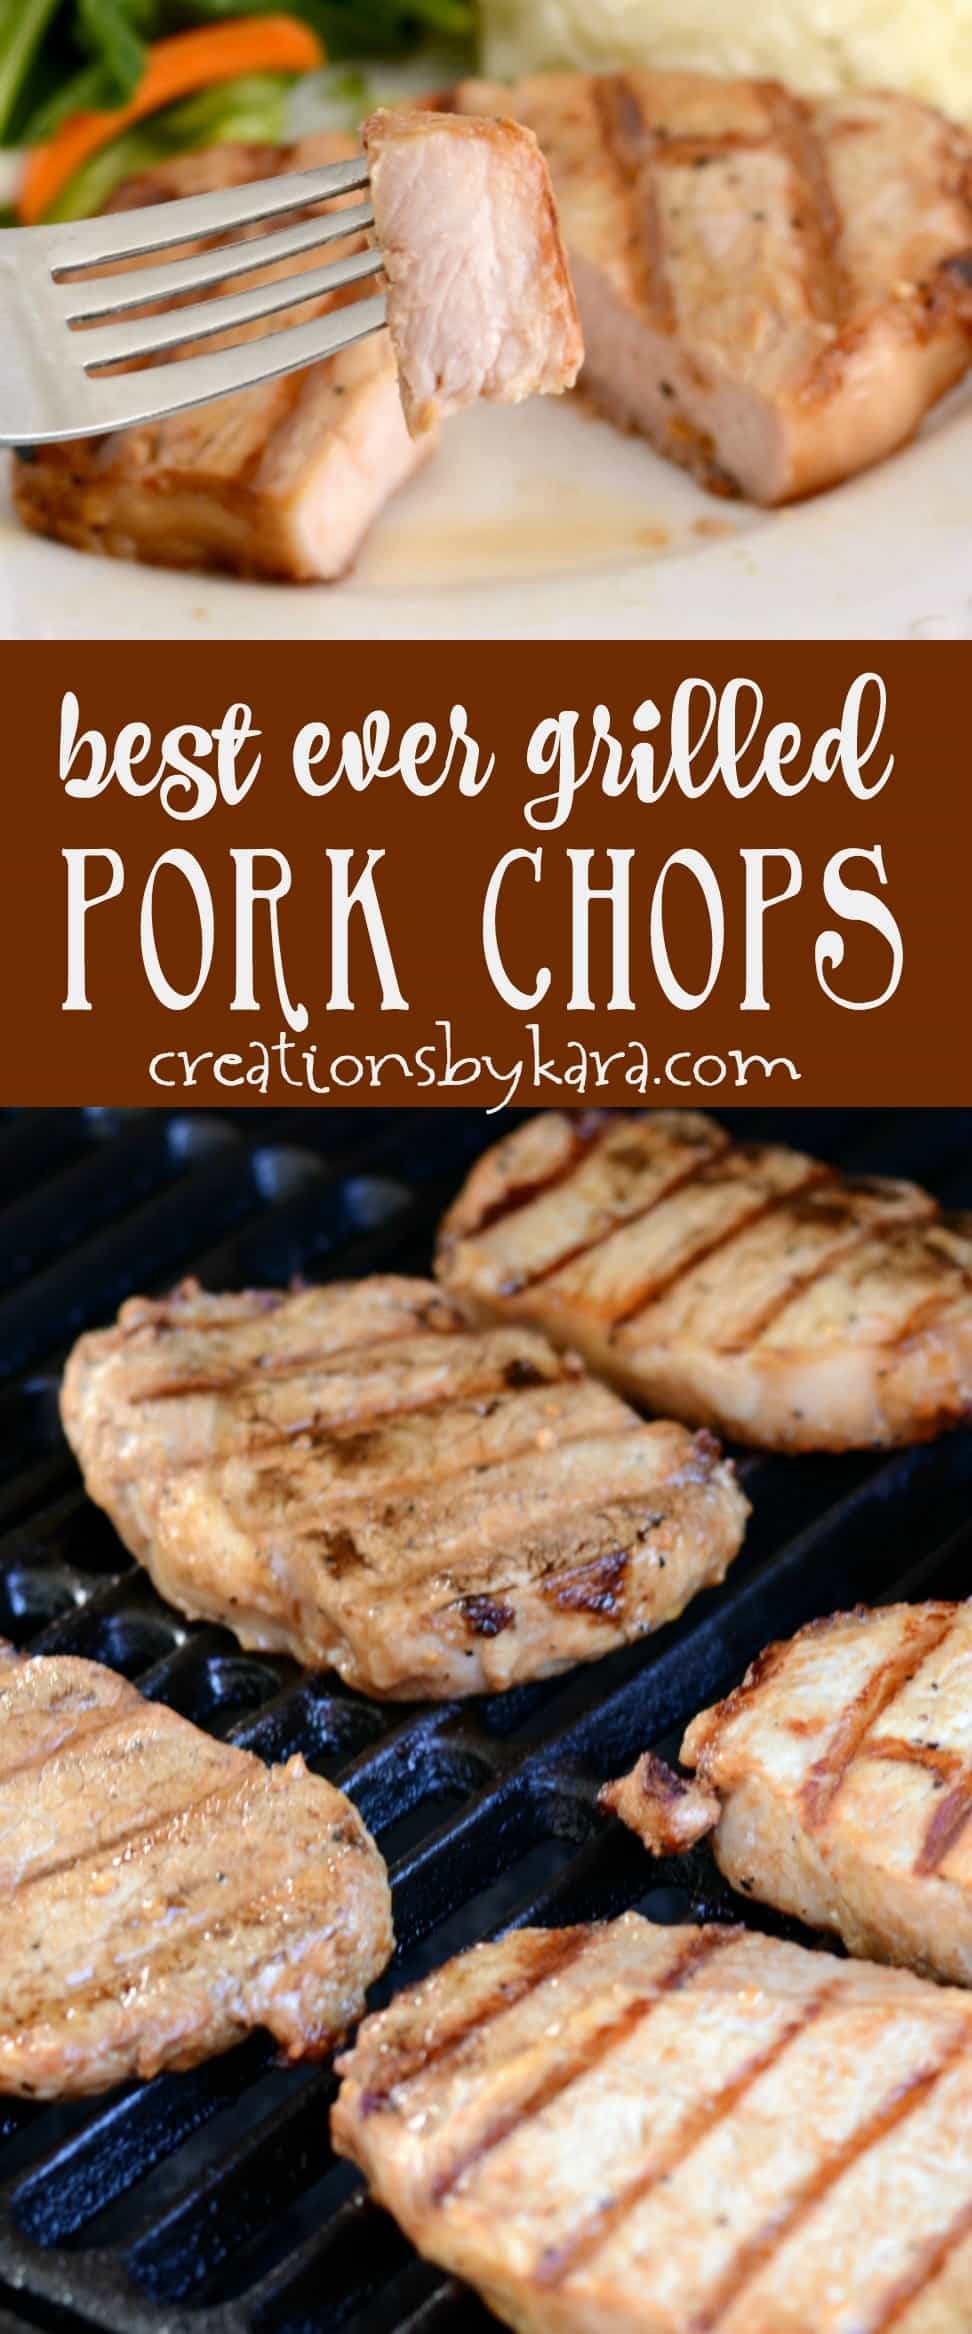 Best Ever Grilled Pork Chops